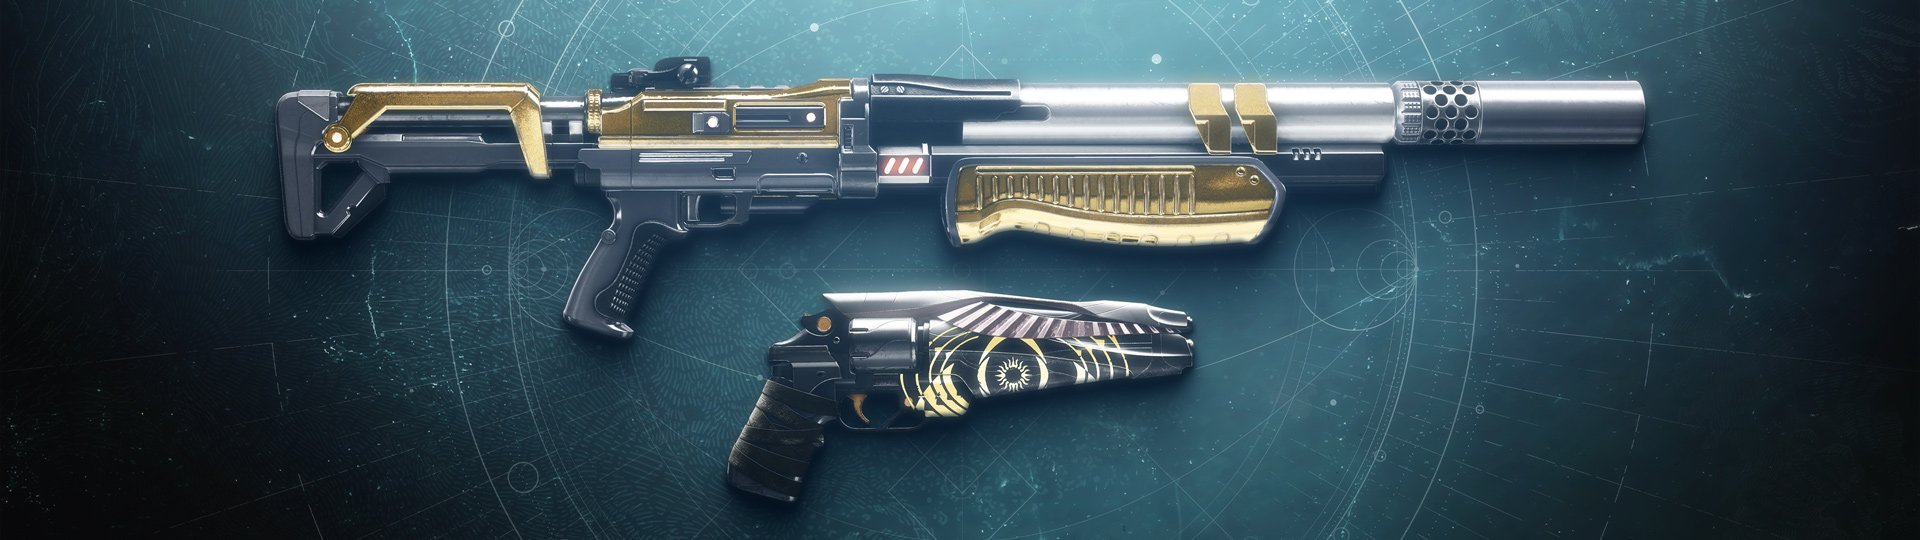 JJ_Weapons_01